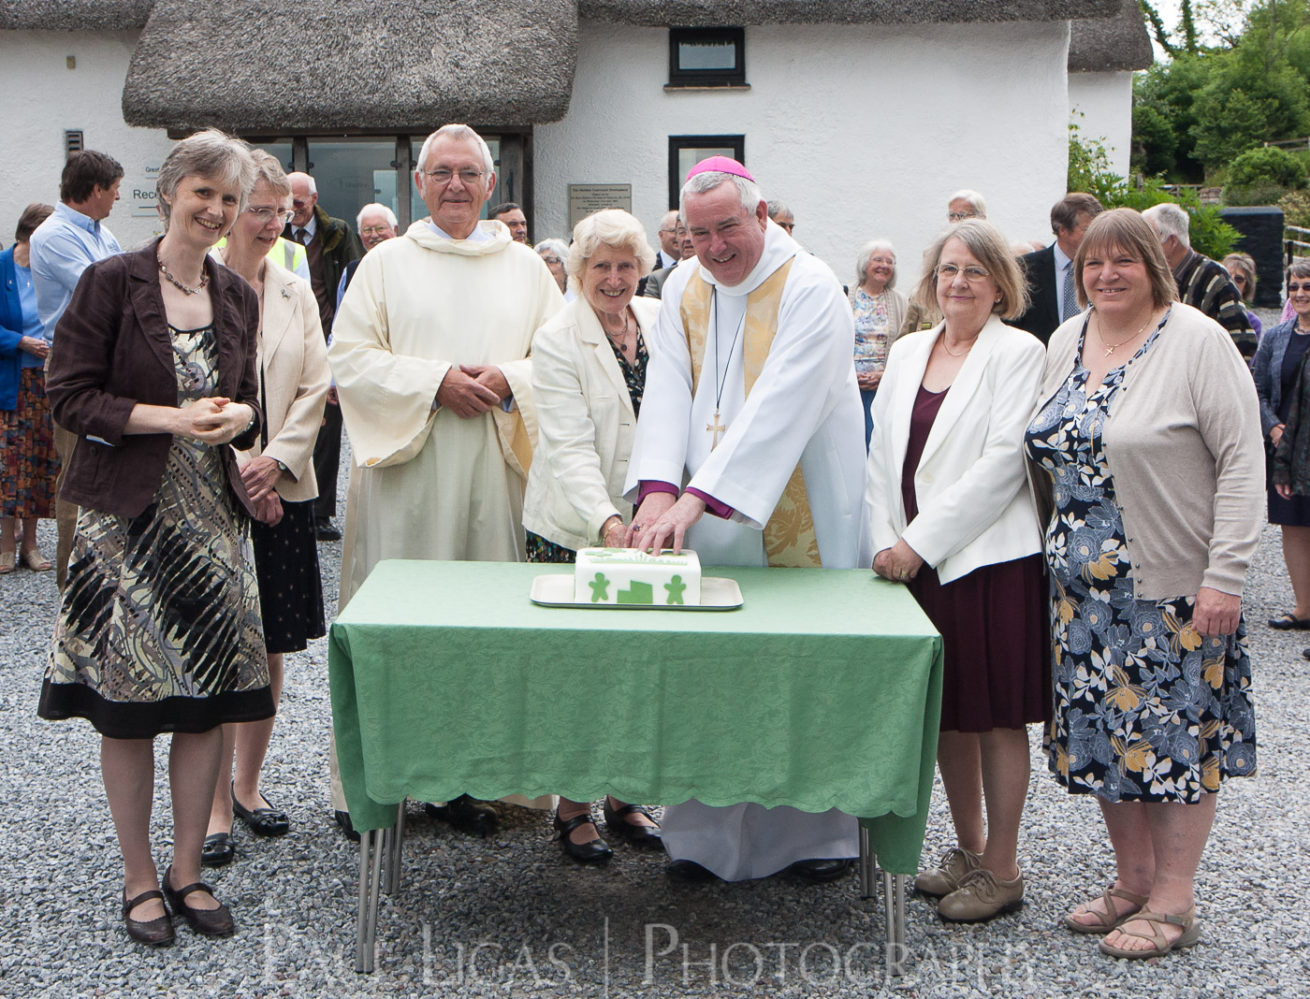 Society of Mary and Martha event photographer photography herefordshire 3860